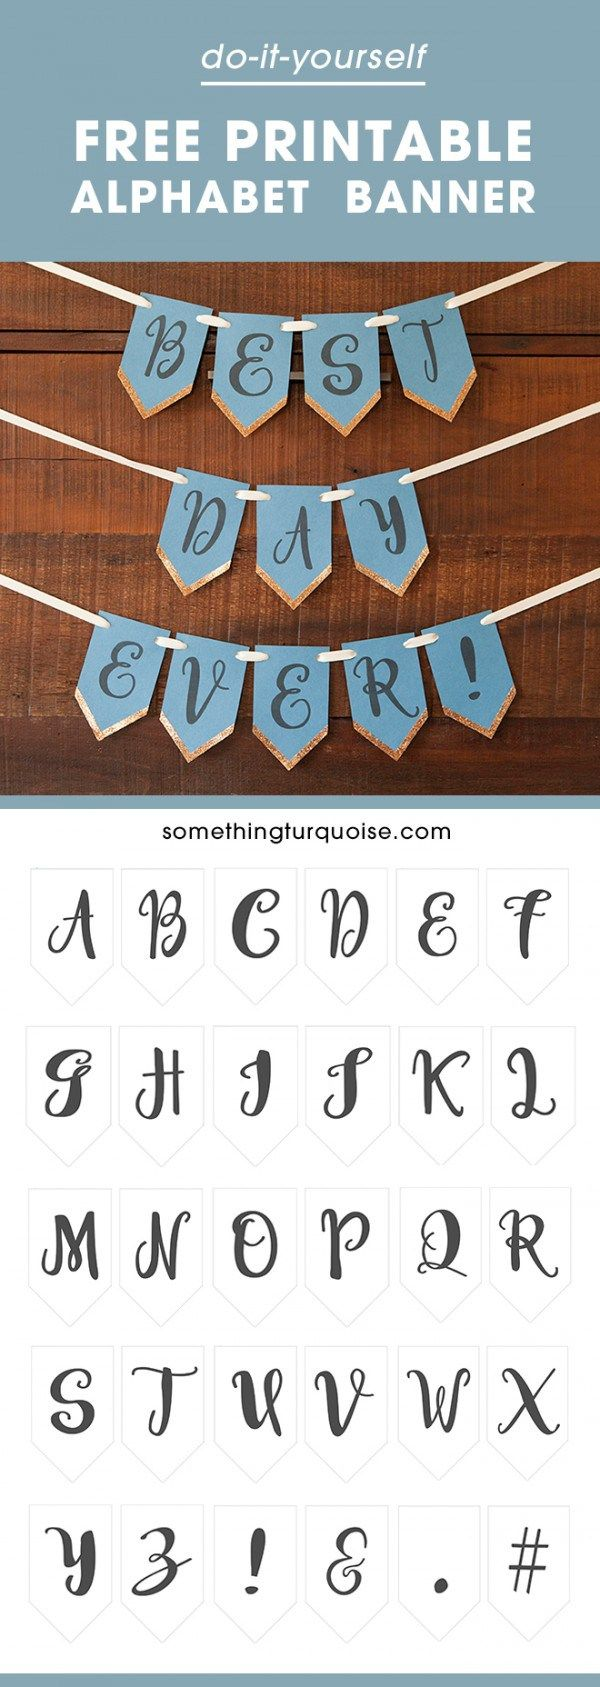 """Loads of Banners online only have"""" Happy Birthday"""" or """"Just Married"""" lettering. This free printable gives you ALL the letters of the Alphabet so you can write whatever you w…"""